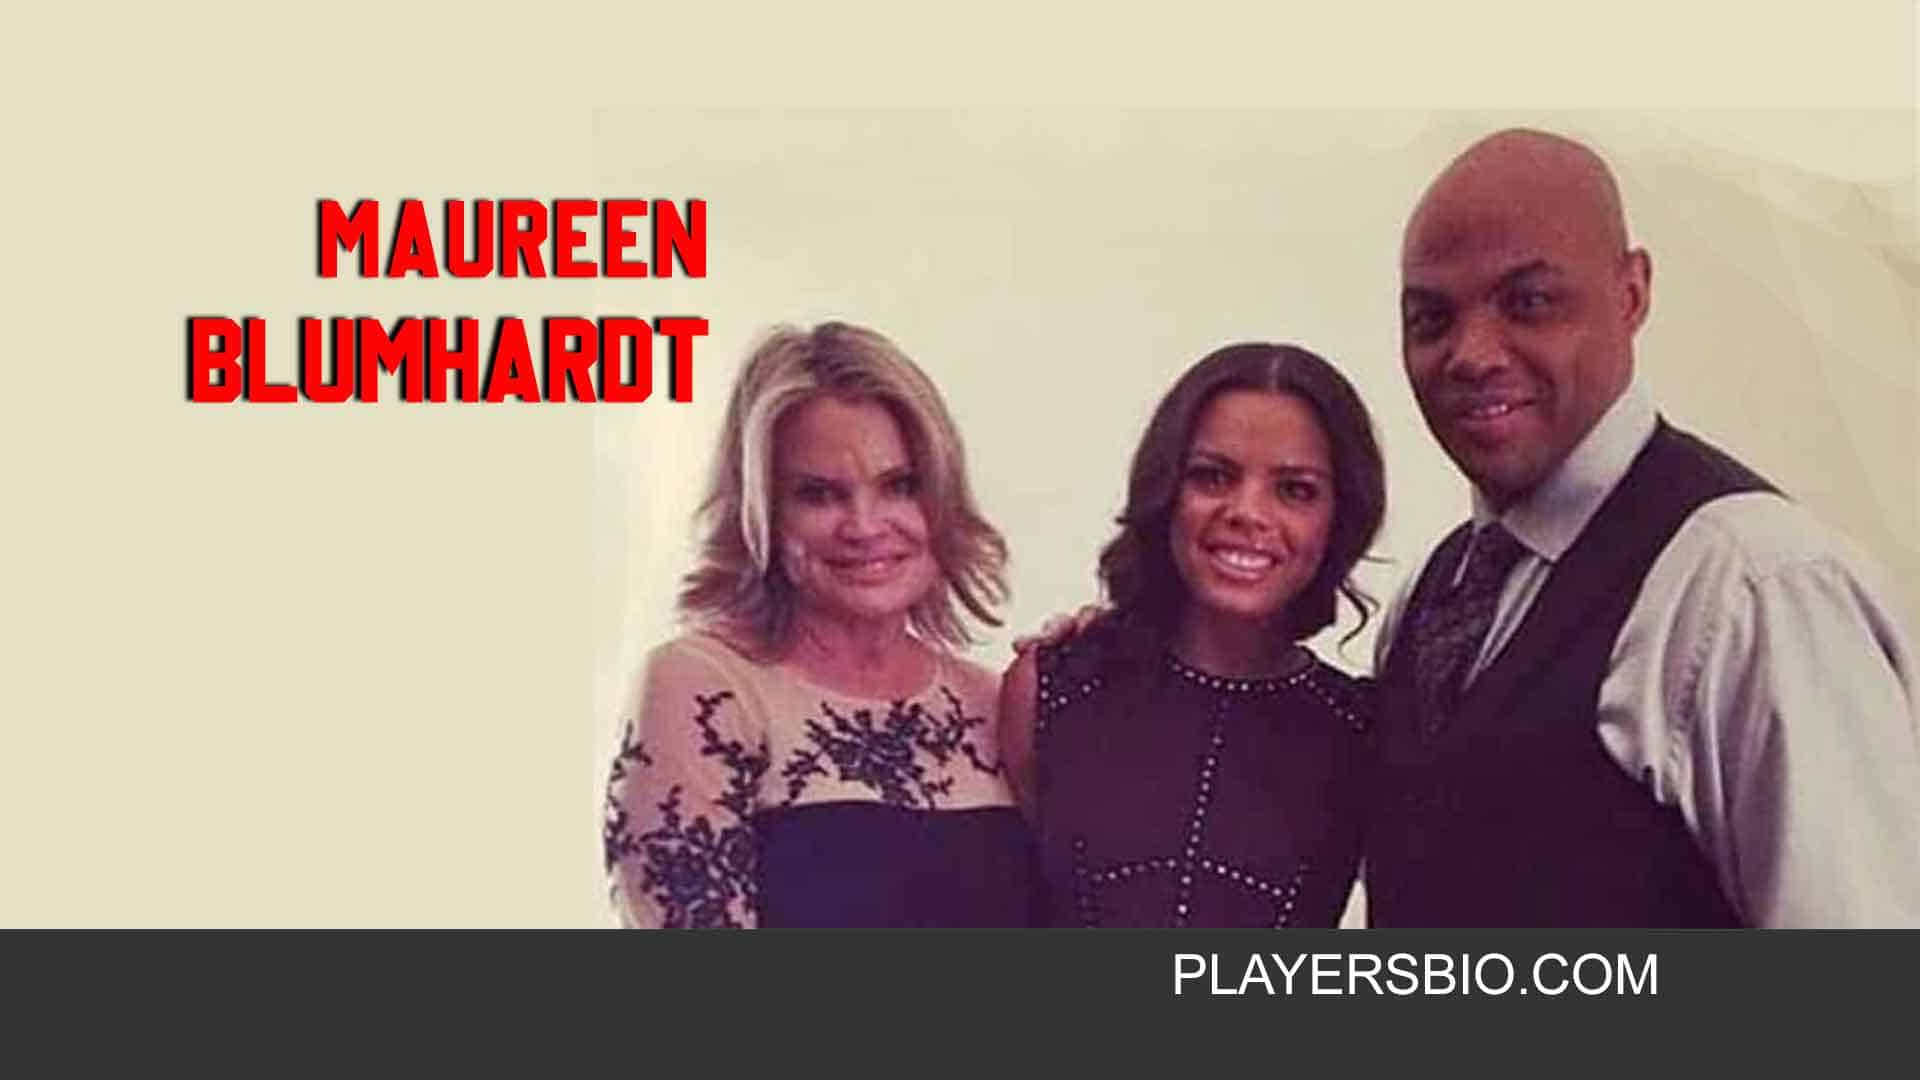 Who Is Charles Barkley S Wife Maureen Blumhardt 2021 Update Maureen blumhardt is an american lady famous due to the fact that she is married to charles barkley, a former nba player and currently a tnt analyst. wife maureen blumhardt 2021